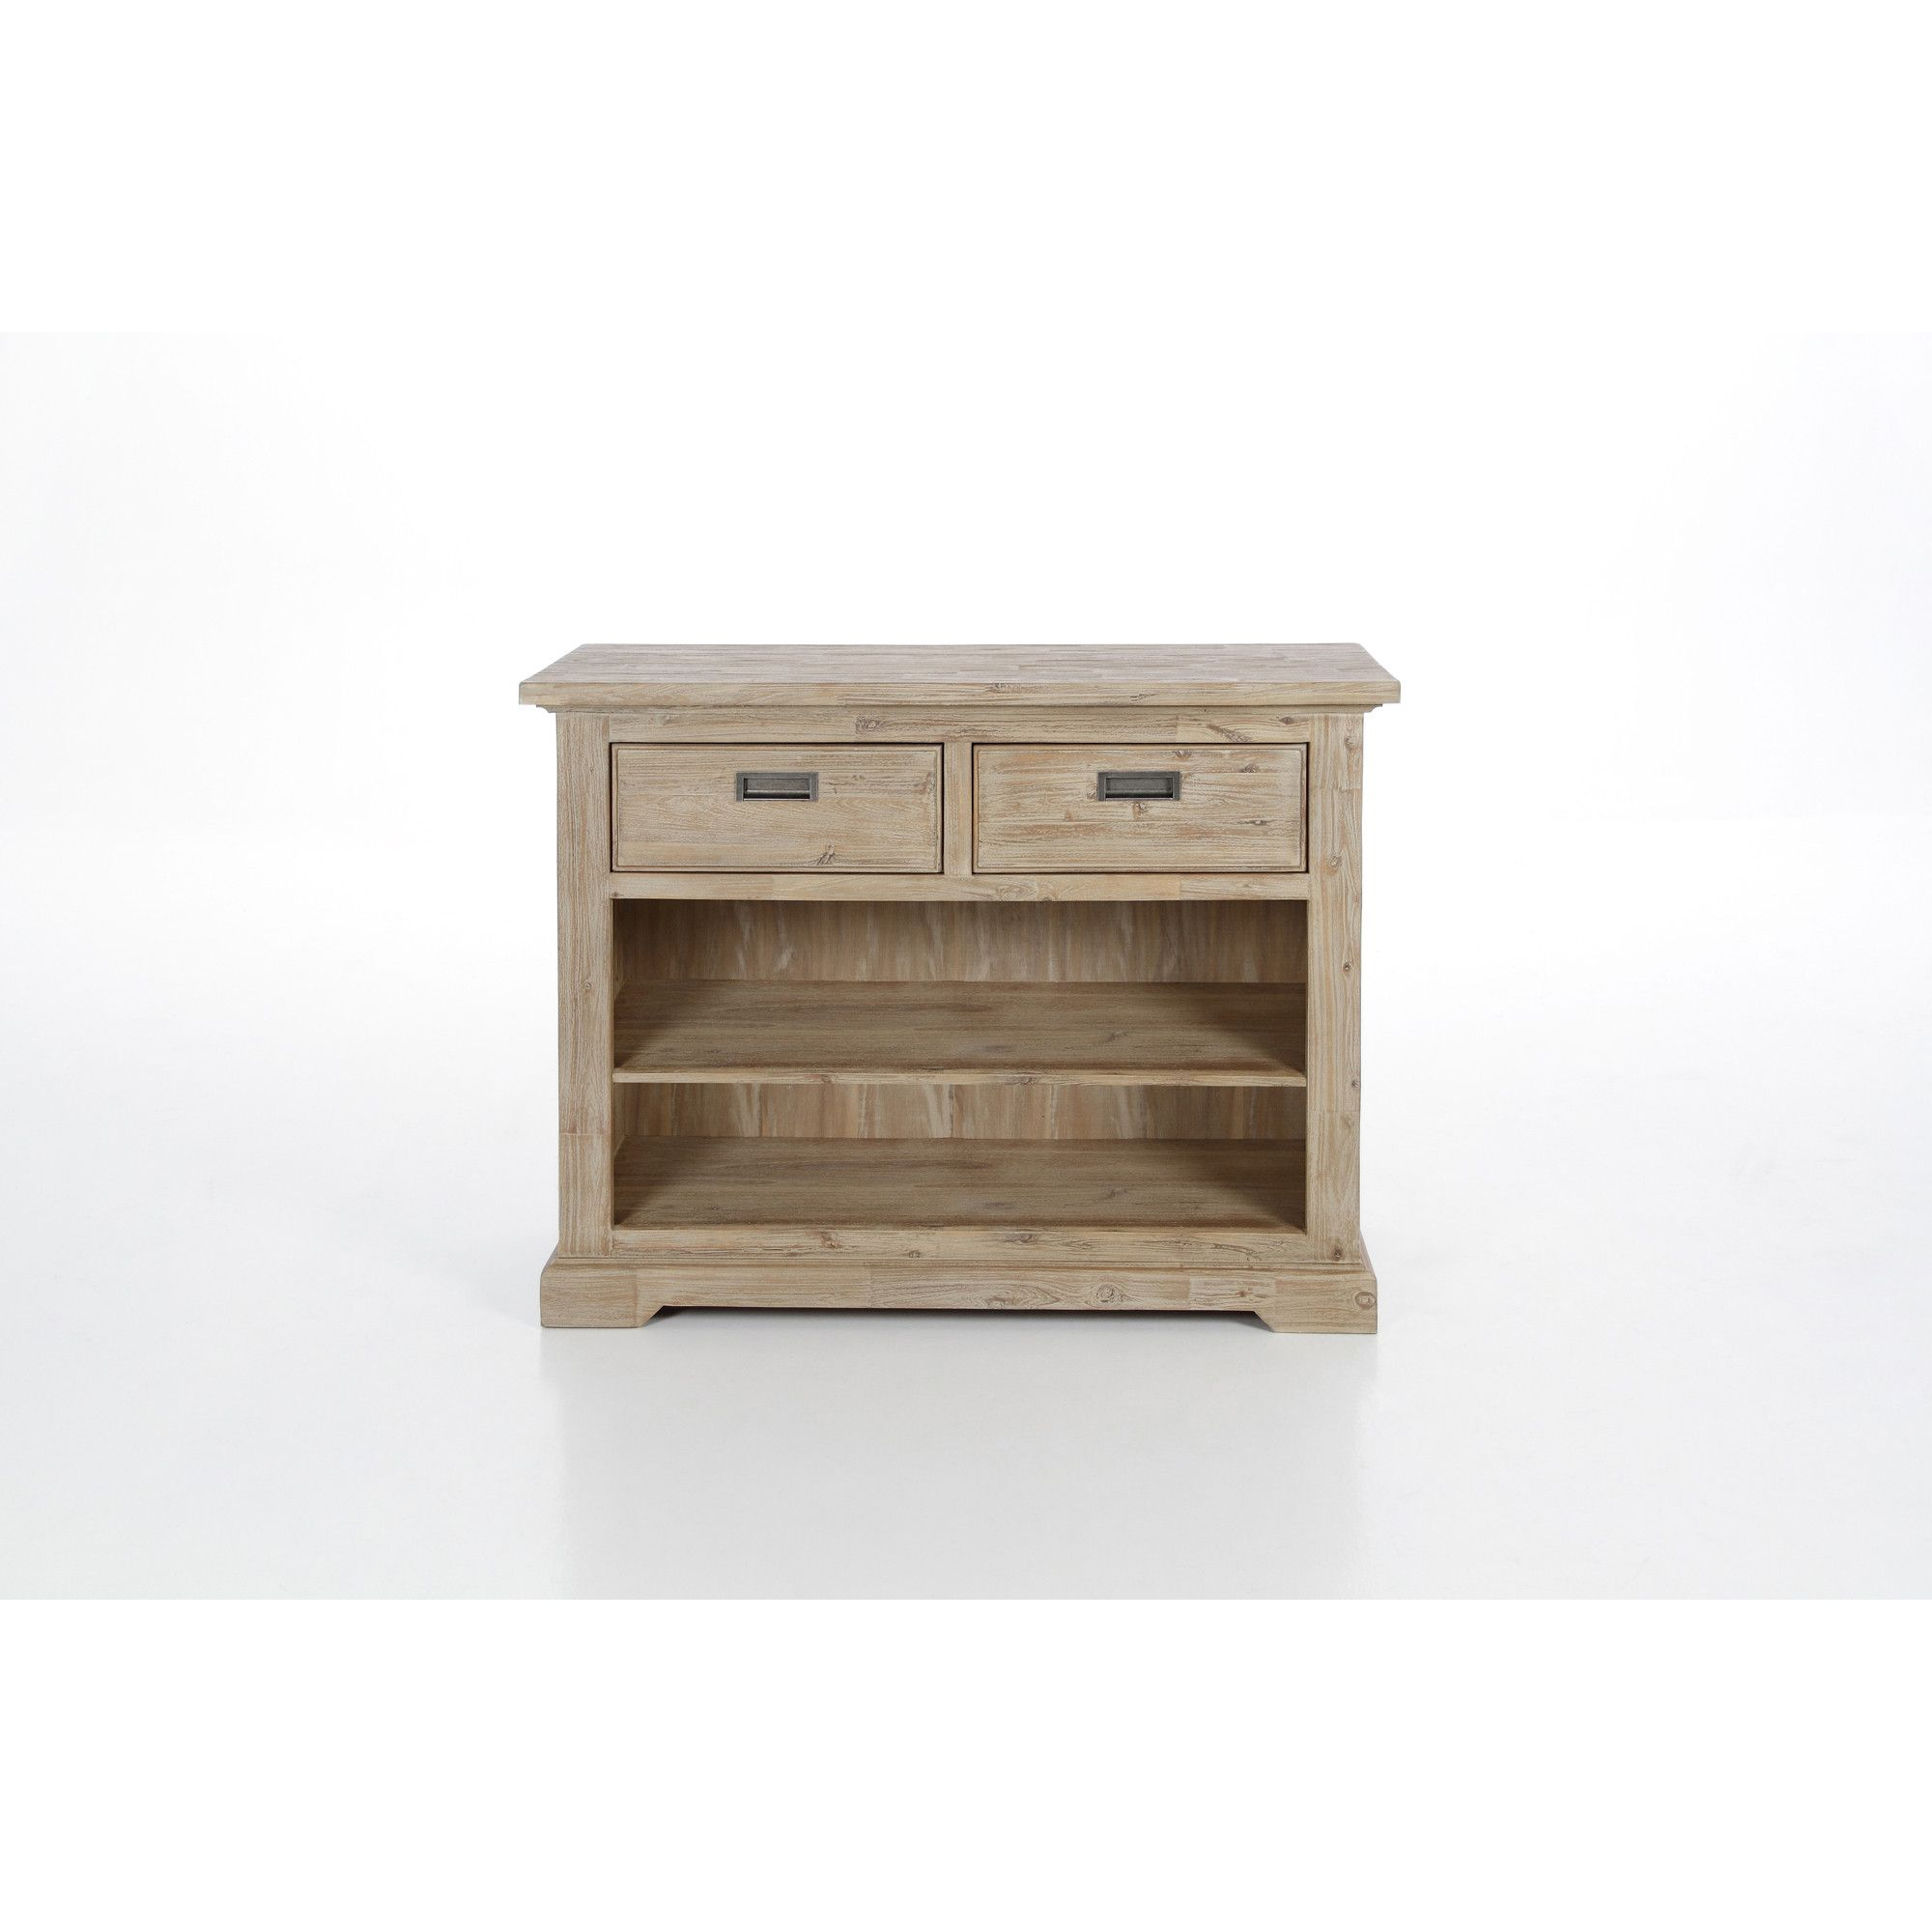 Aspect Design Nimes Console Table at Tesco Direct